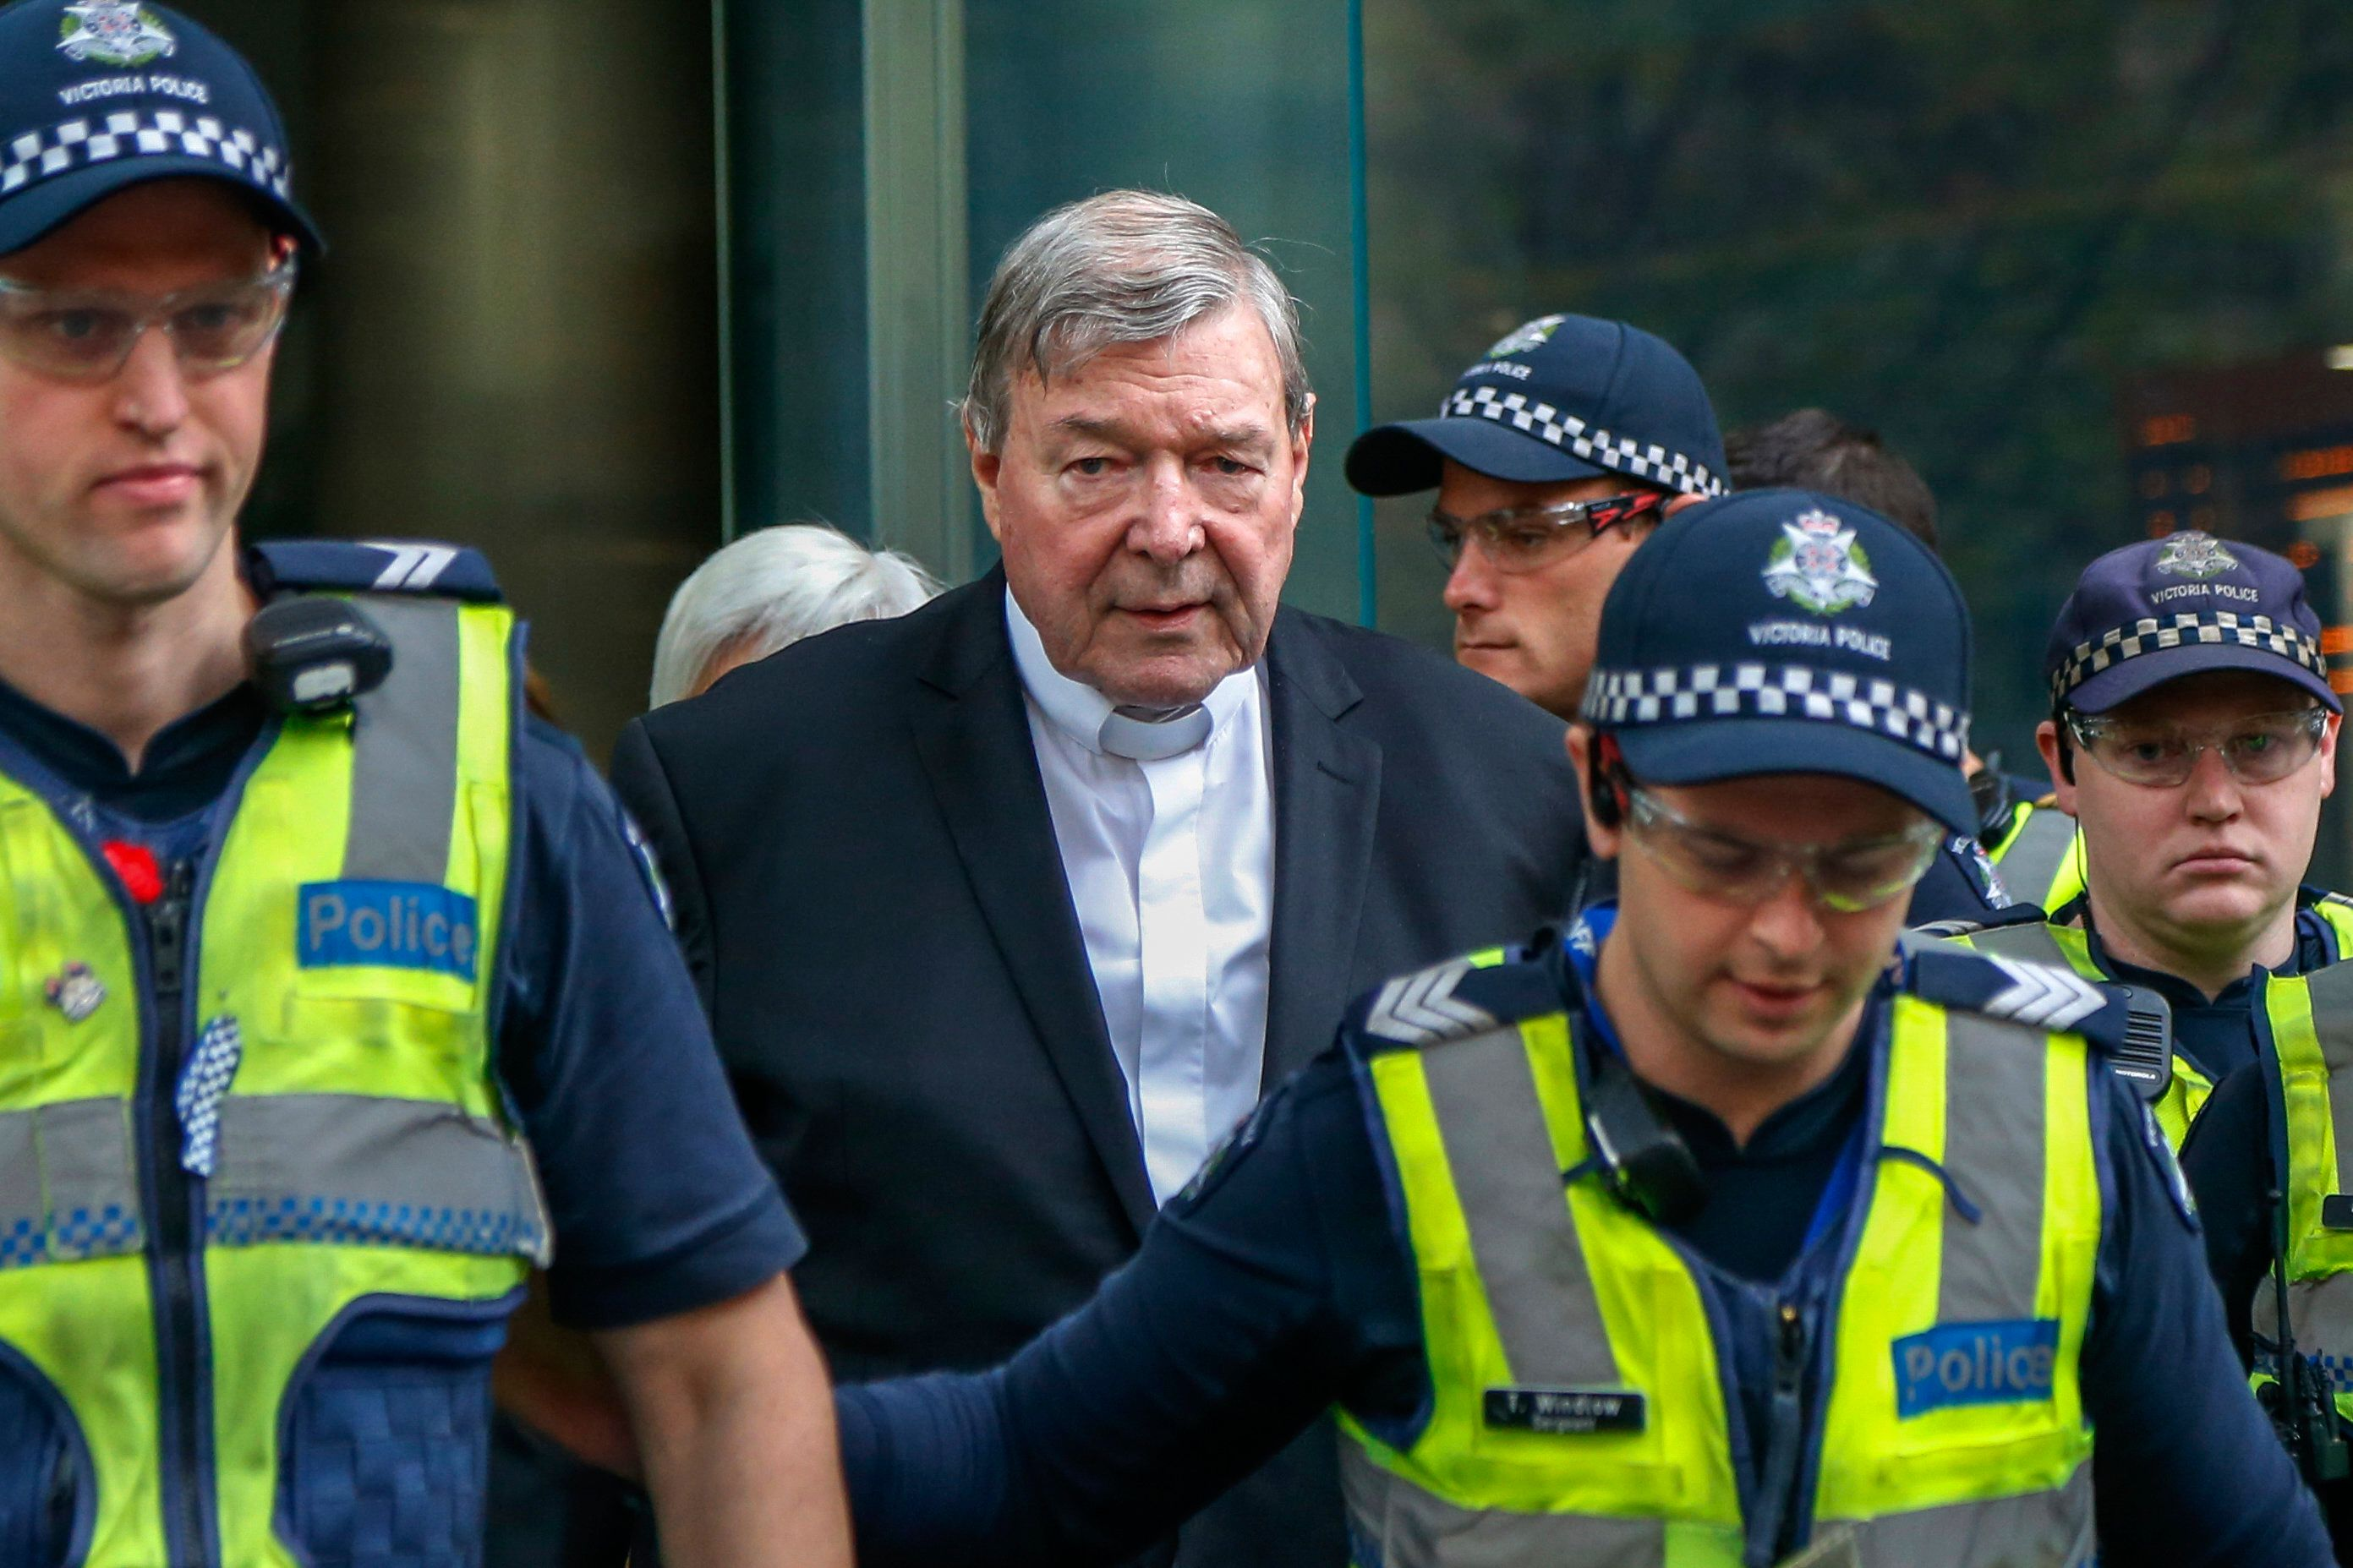 Cardinal George Pell of Australia was found guilty in December of five counts of historical sexual